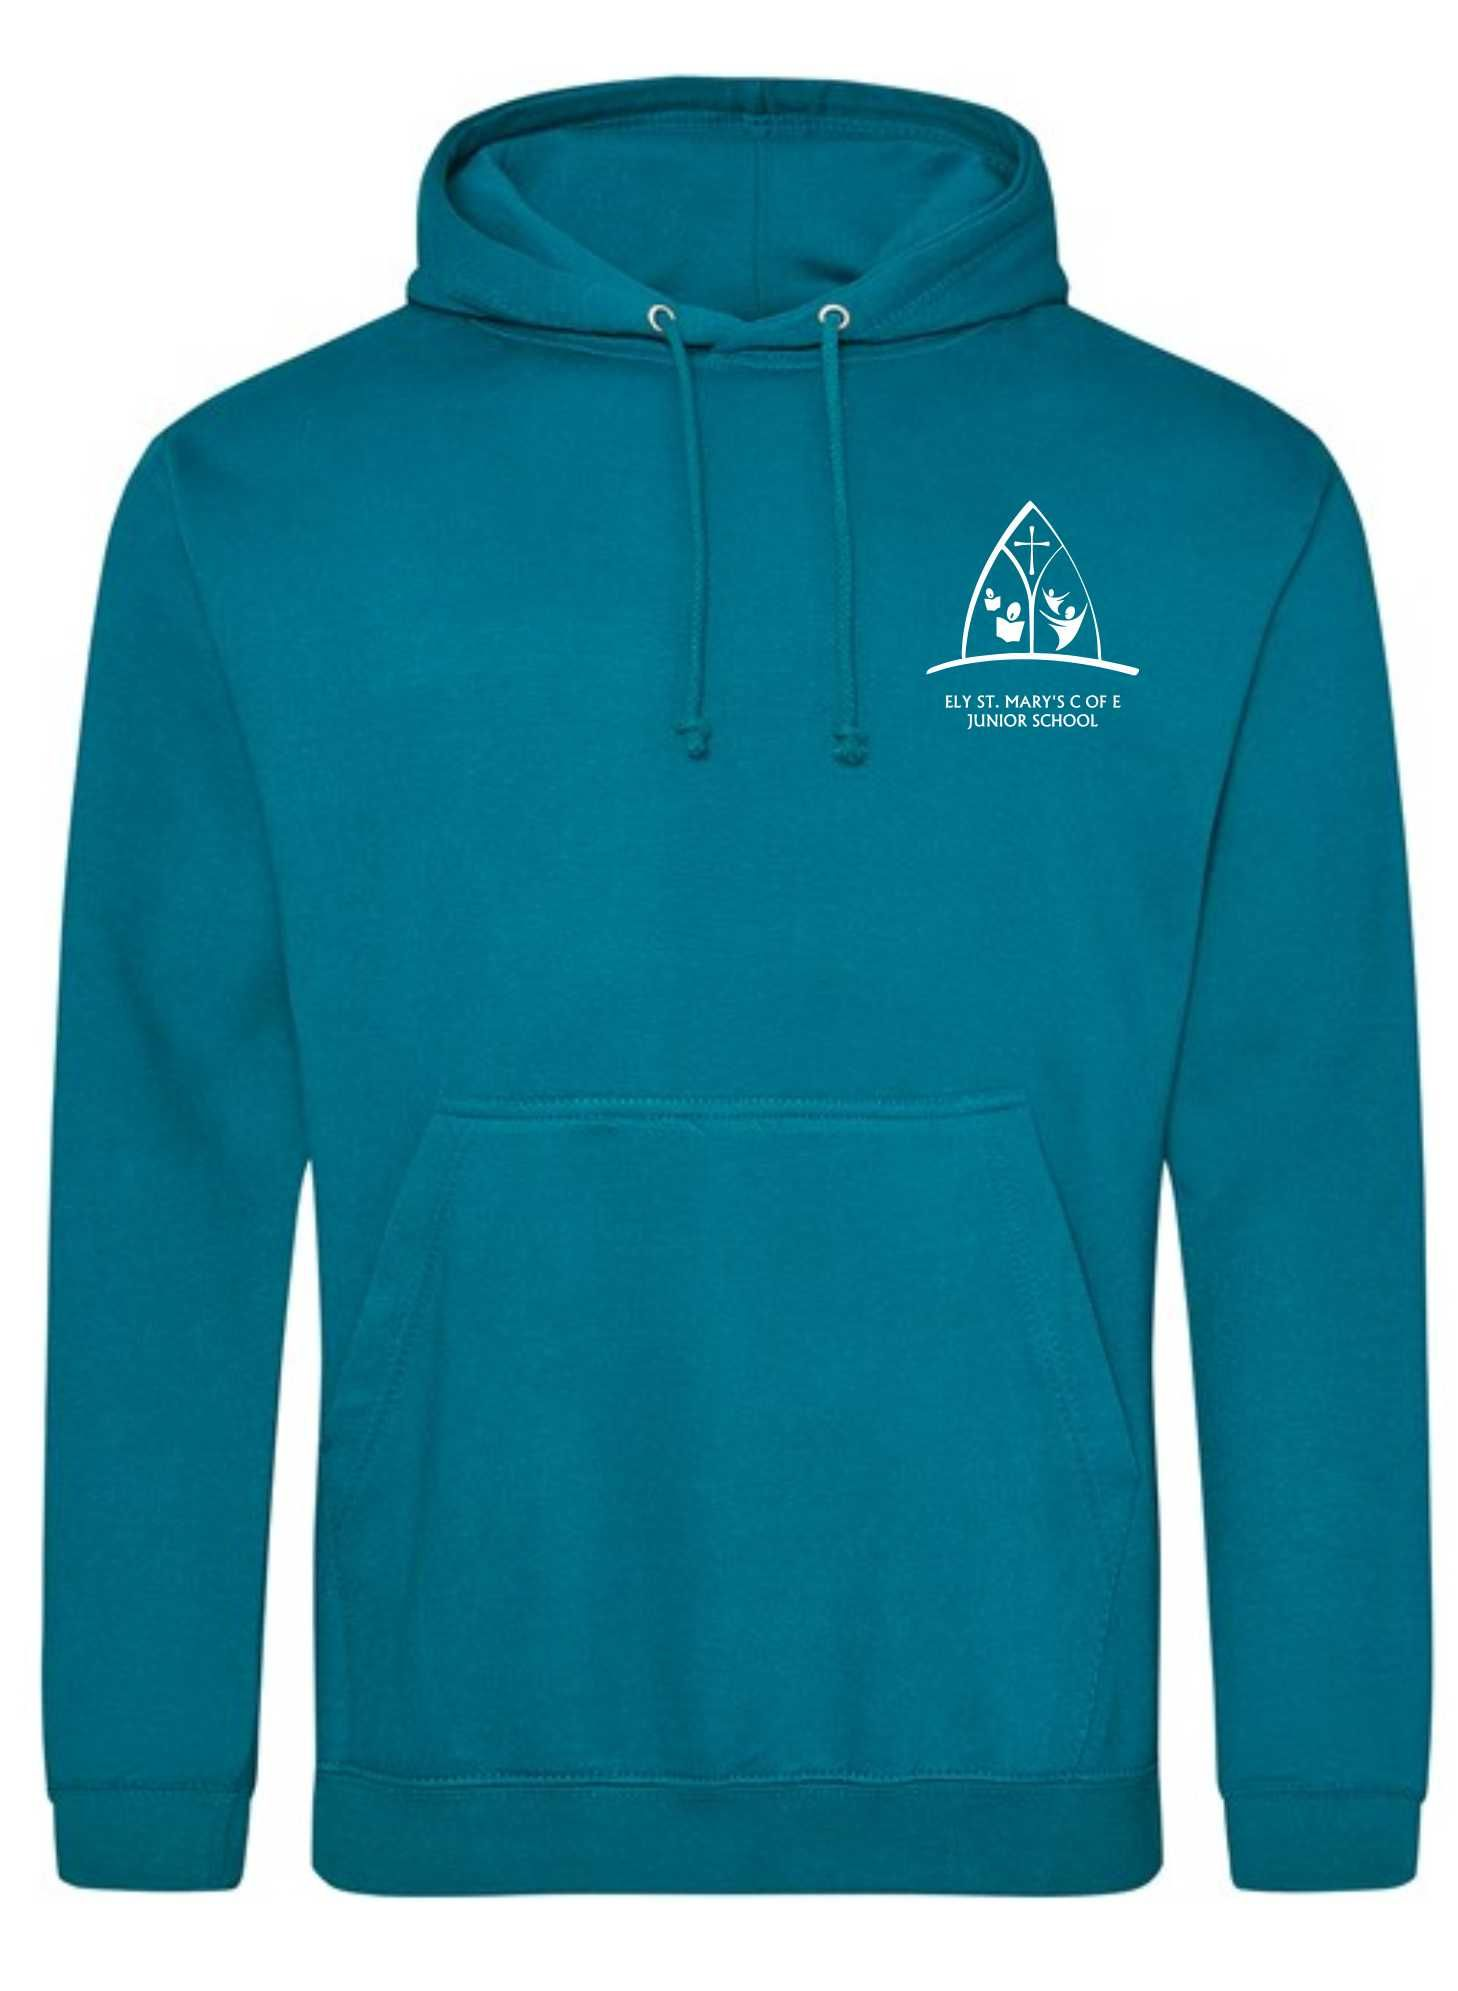 Ely St Mary's- Leavers Hoodie (Adult Size)